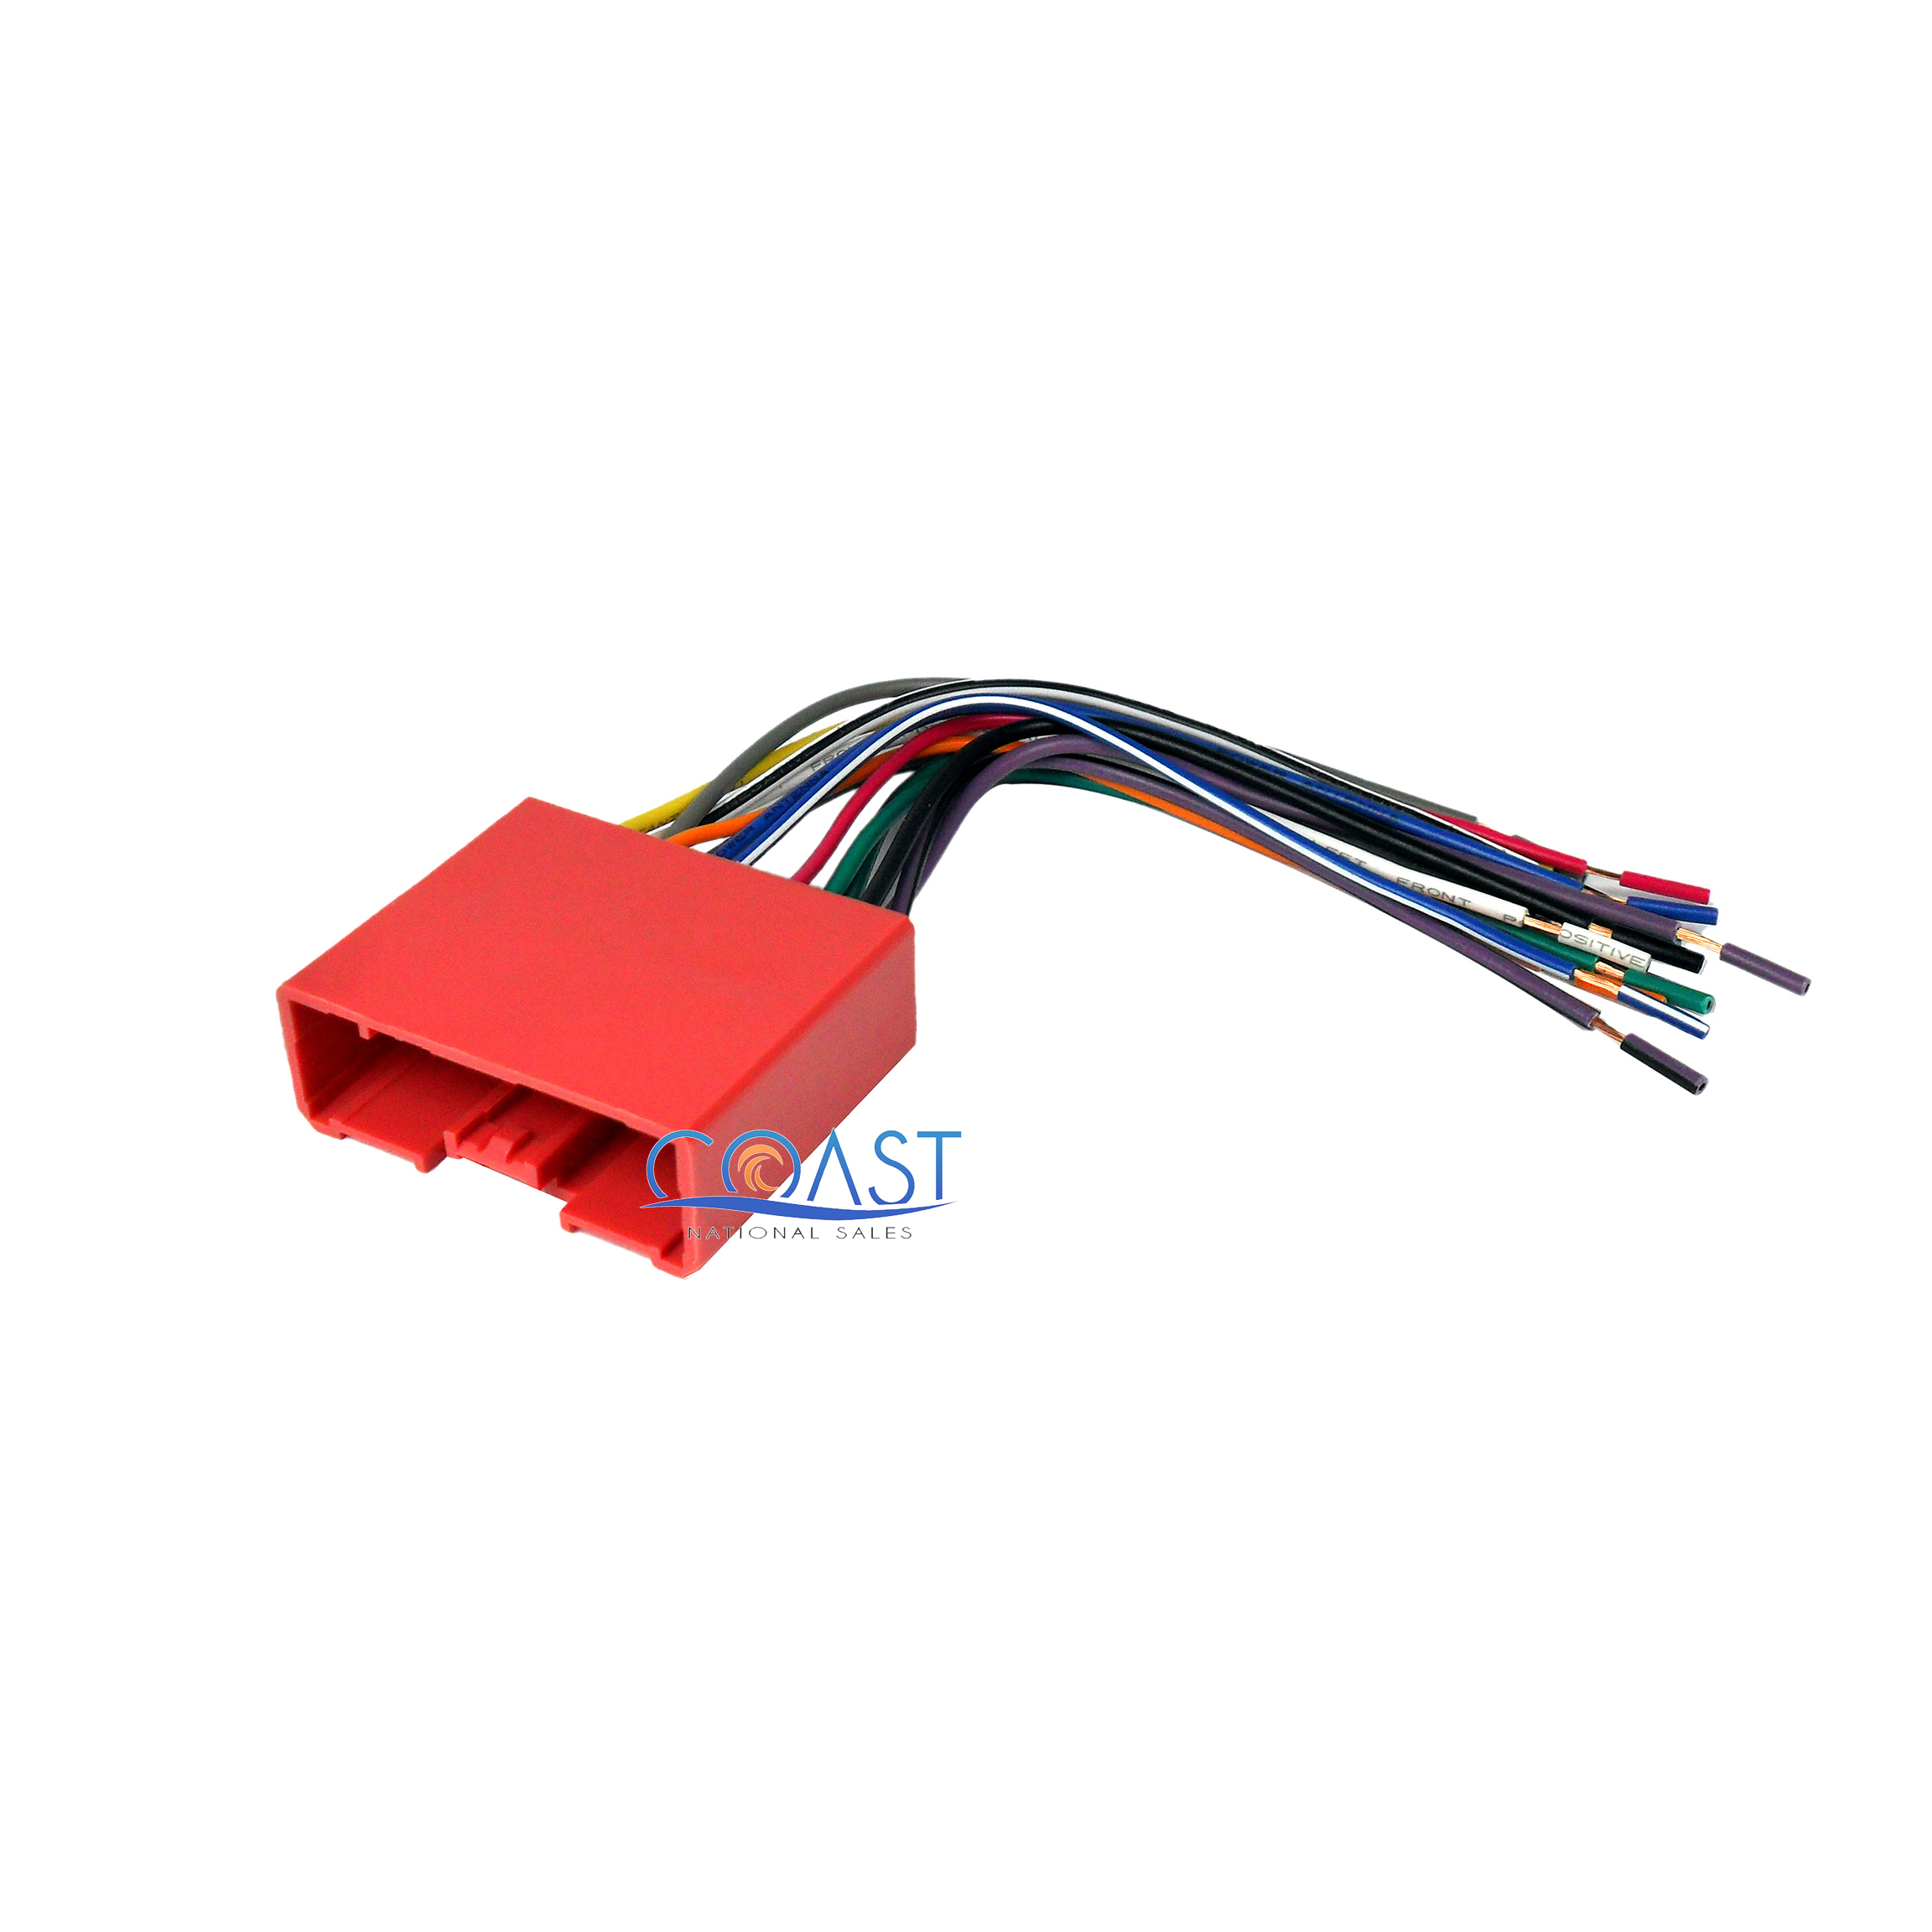 Details about Car Stereo Radio Wiring Harness Plugs into Factory Harness on